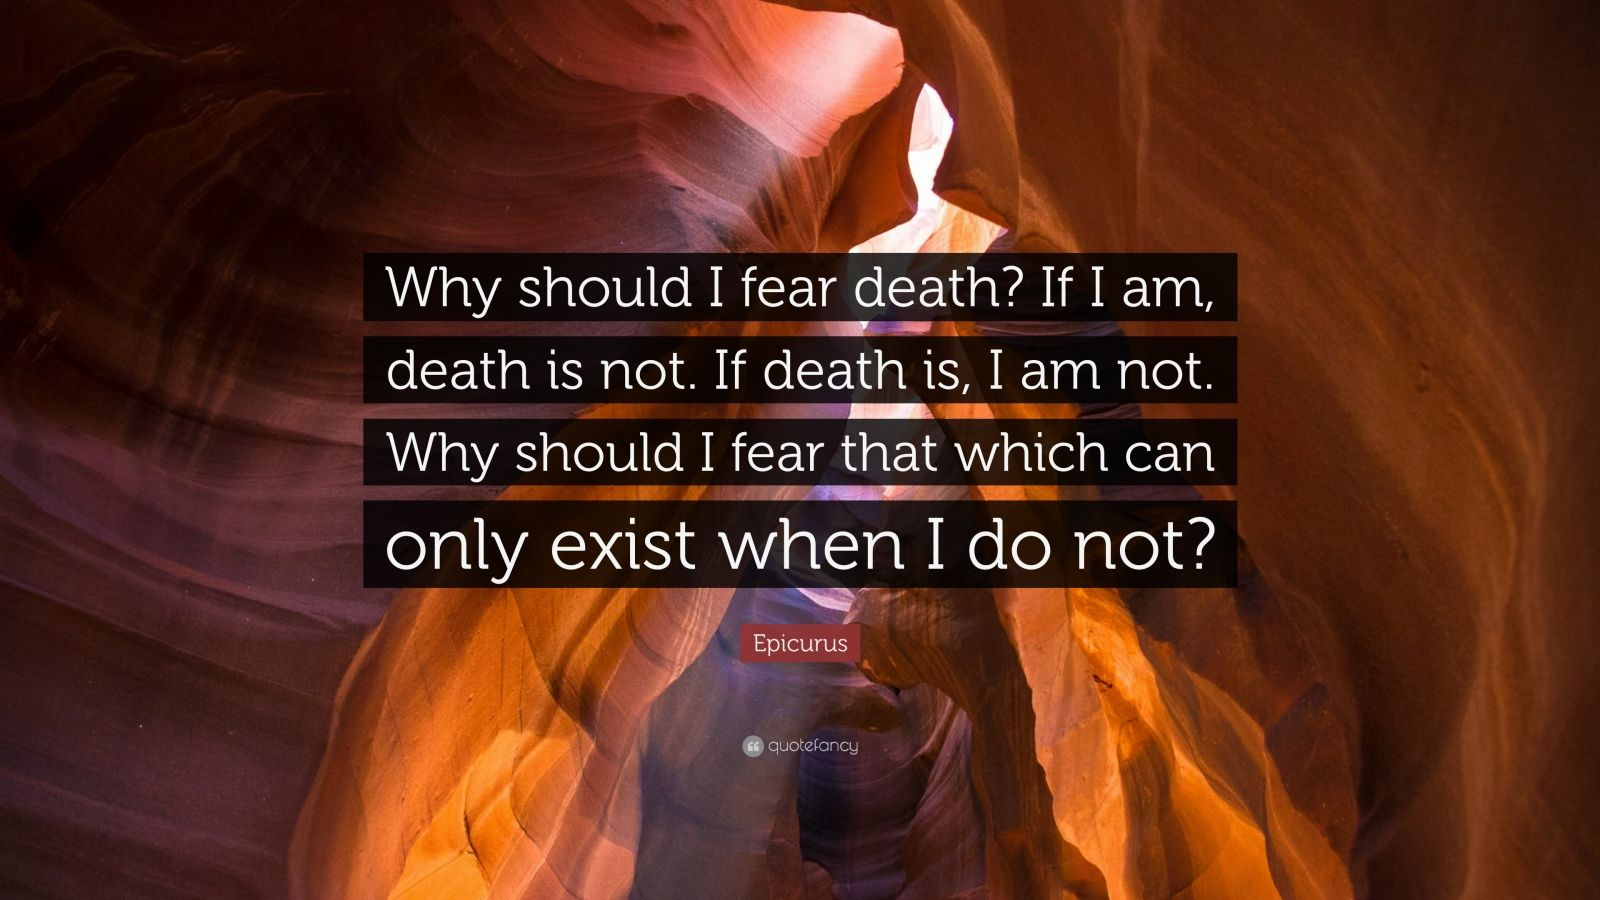 a life without fear essay In my life, i have taken many journeys without which i would not have experienced important truths my father started us off early, taking us on many journeys to help us understand that true knowledge comes only from experience.